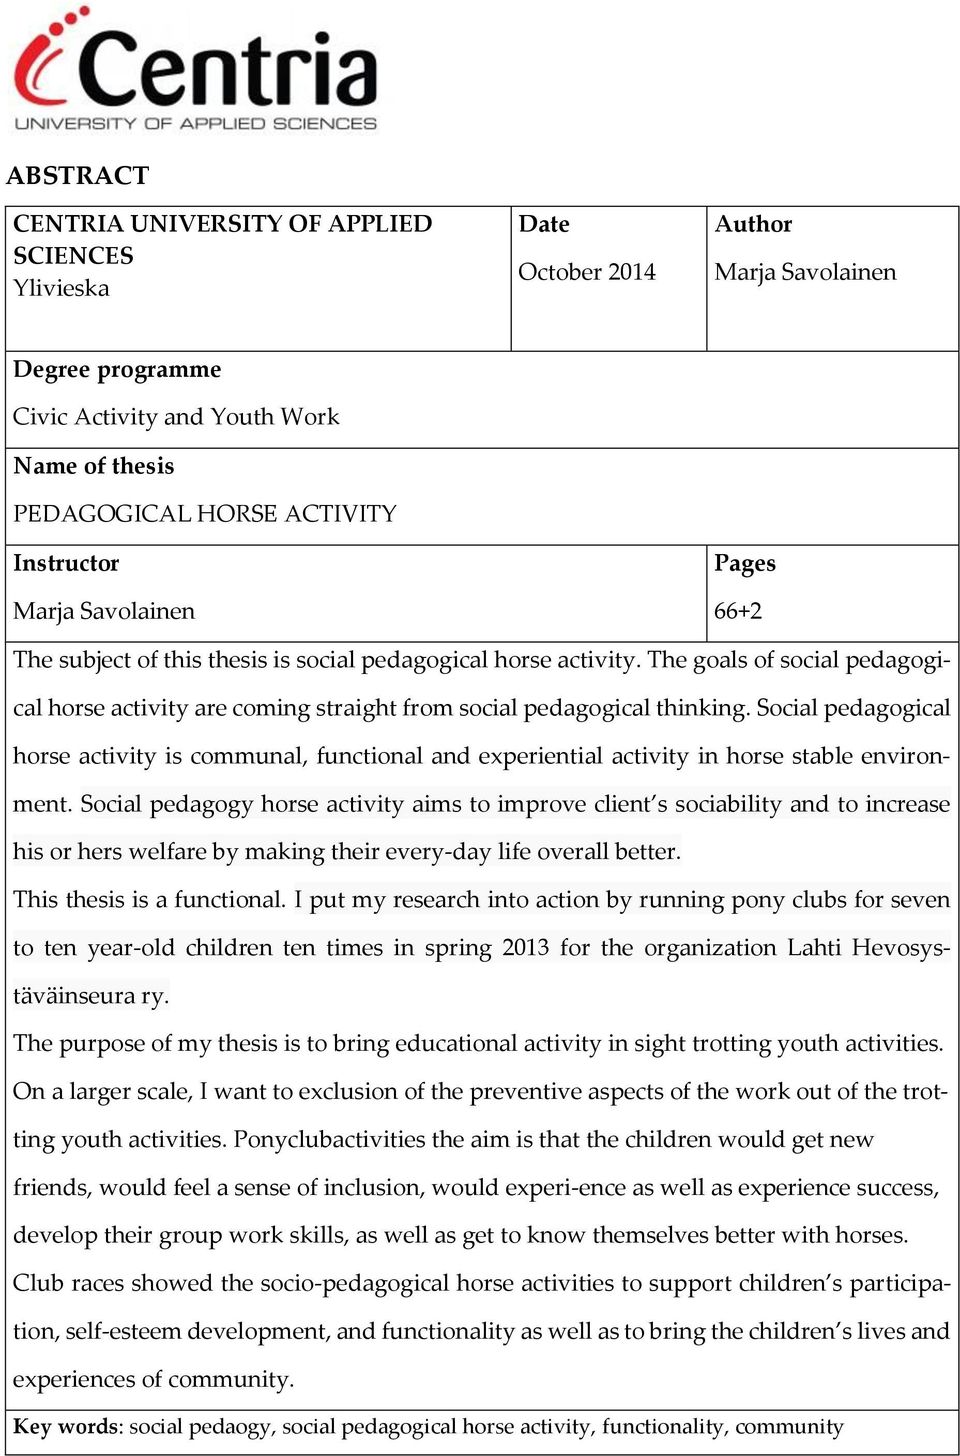 Social pedagogical horse activity is communal, functional and experiential activity in horse stable environment.